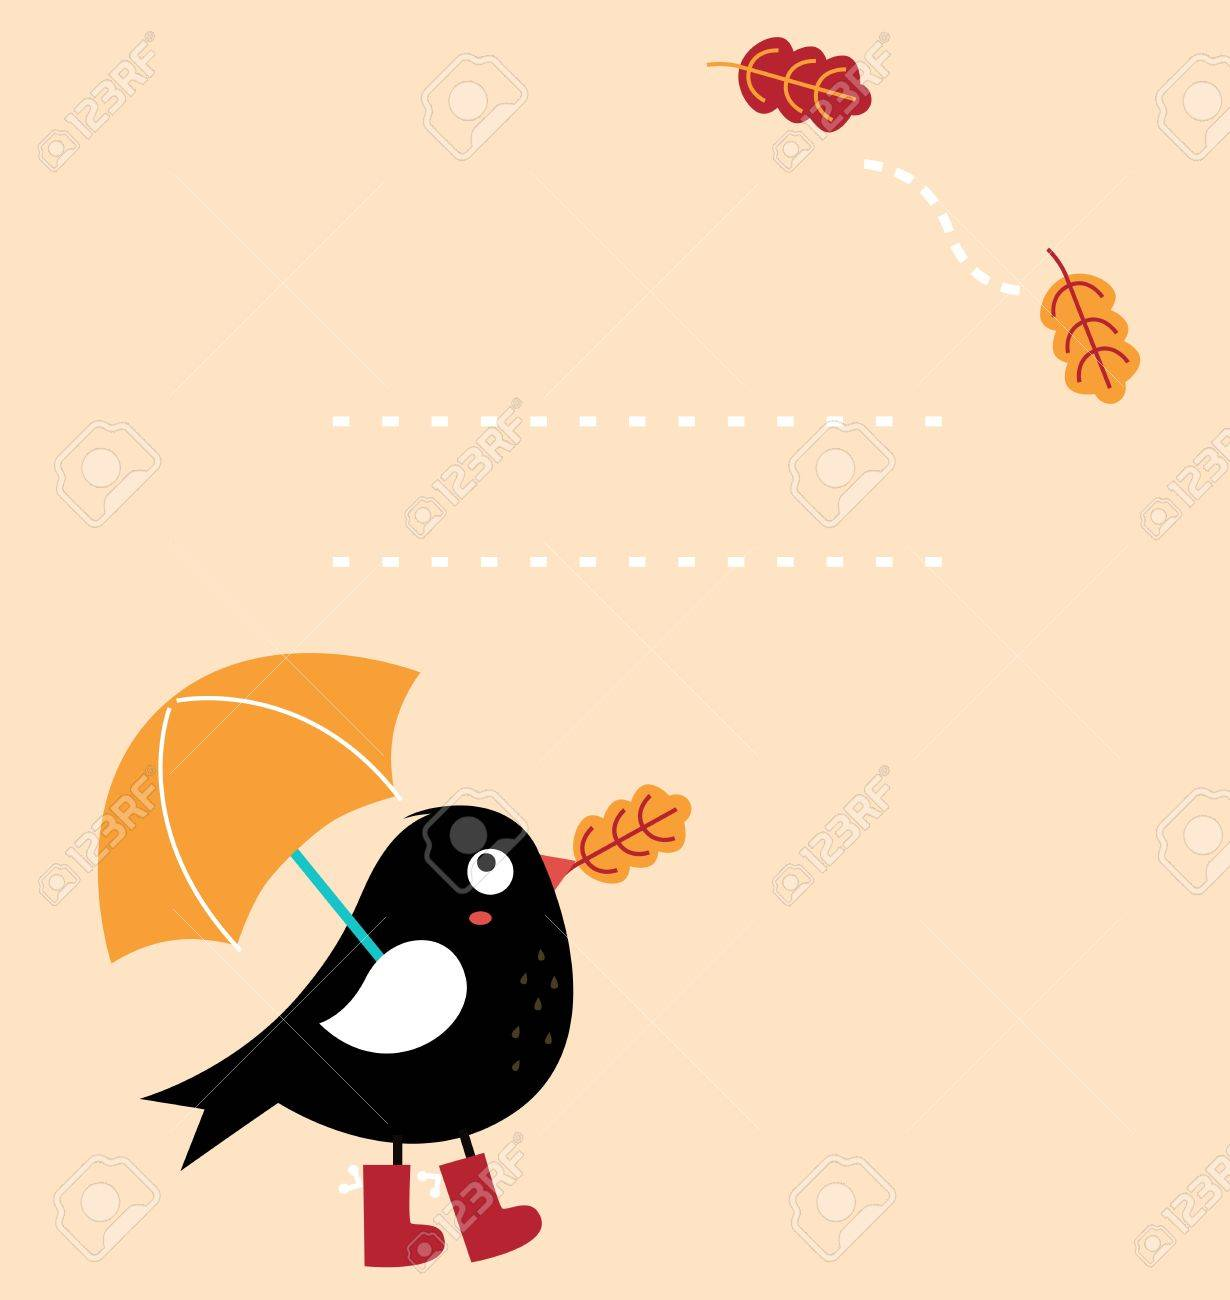 Autumn greeting Card with fallen leaves and black Bird with copy space. Vector Illustration Stock Vector - 21732910